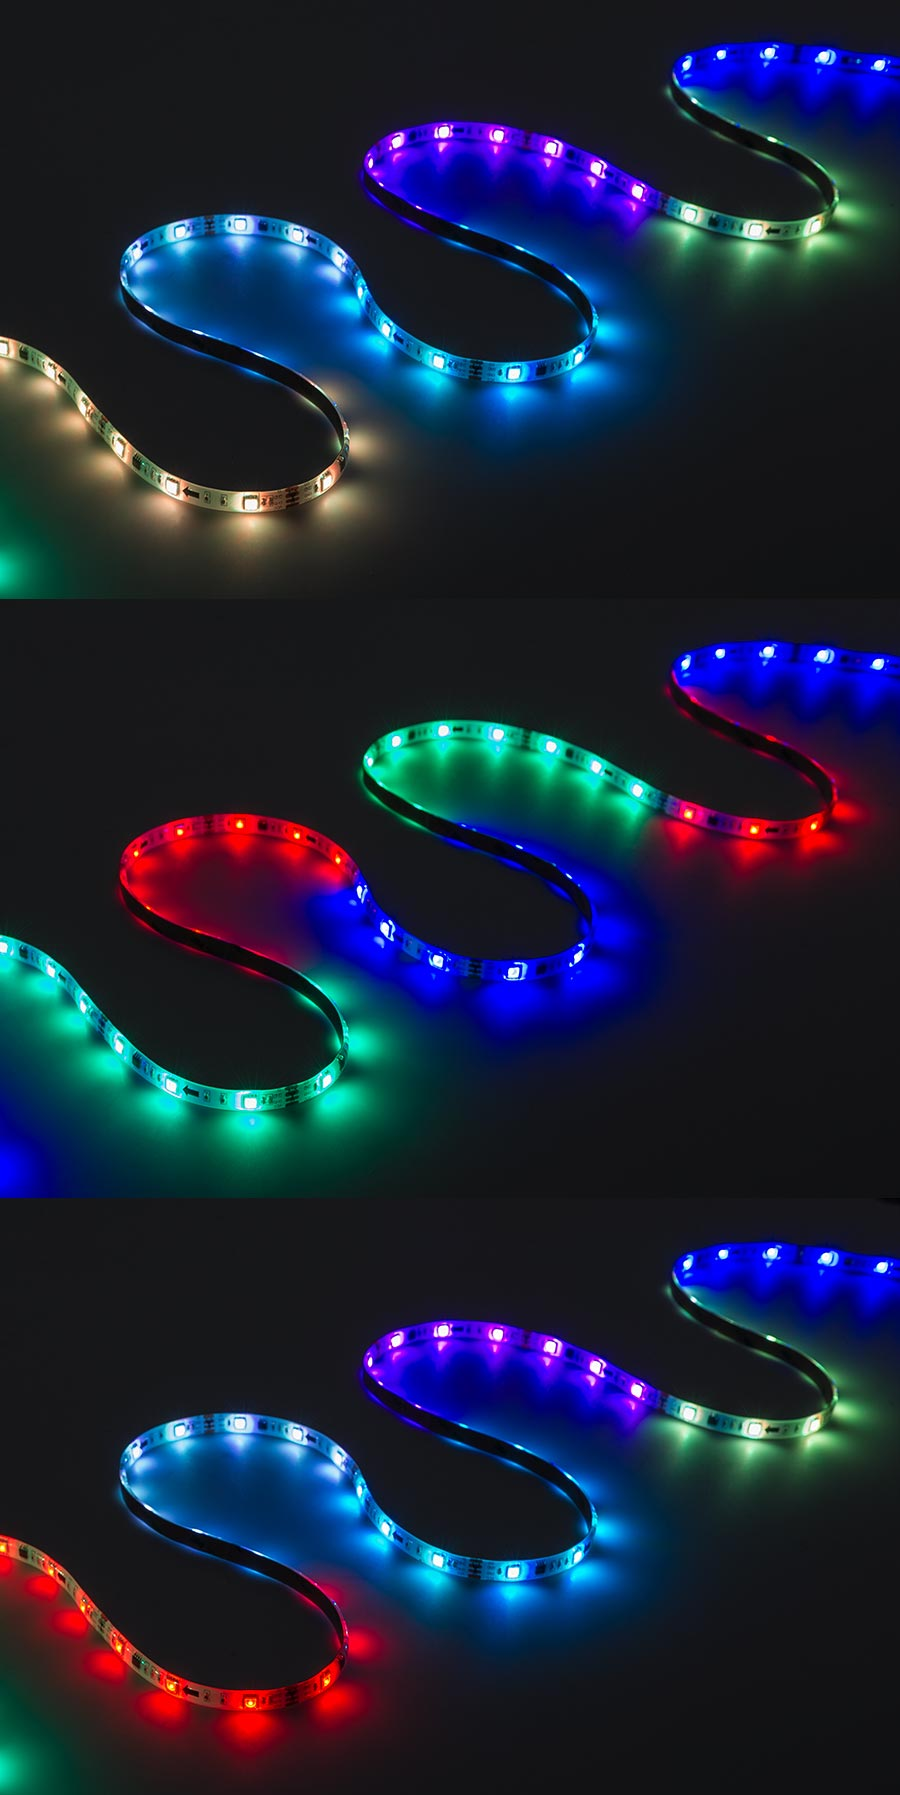 Outdoor rgb led strip light kit color chasing 12v led tape light color chasing rgb led flexible light strip kit includes plug n play contoller with remote and power supply on showing multiple color dreamcolor modes mozeypictures